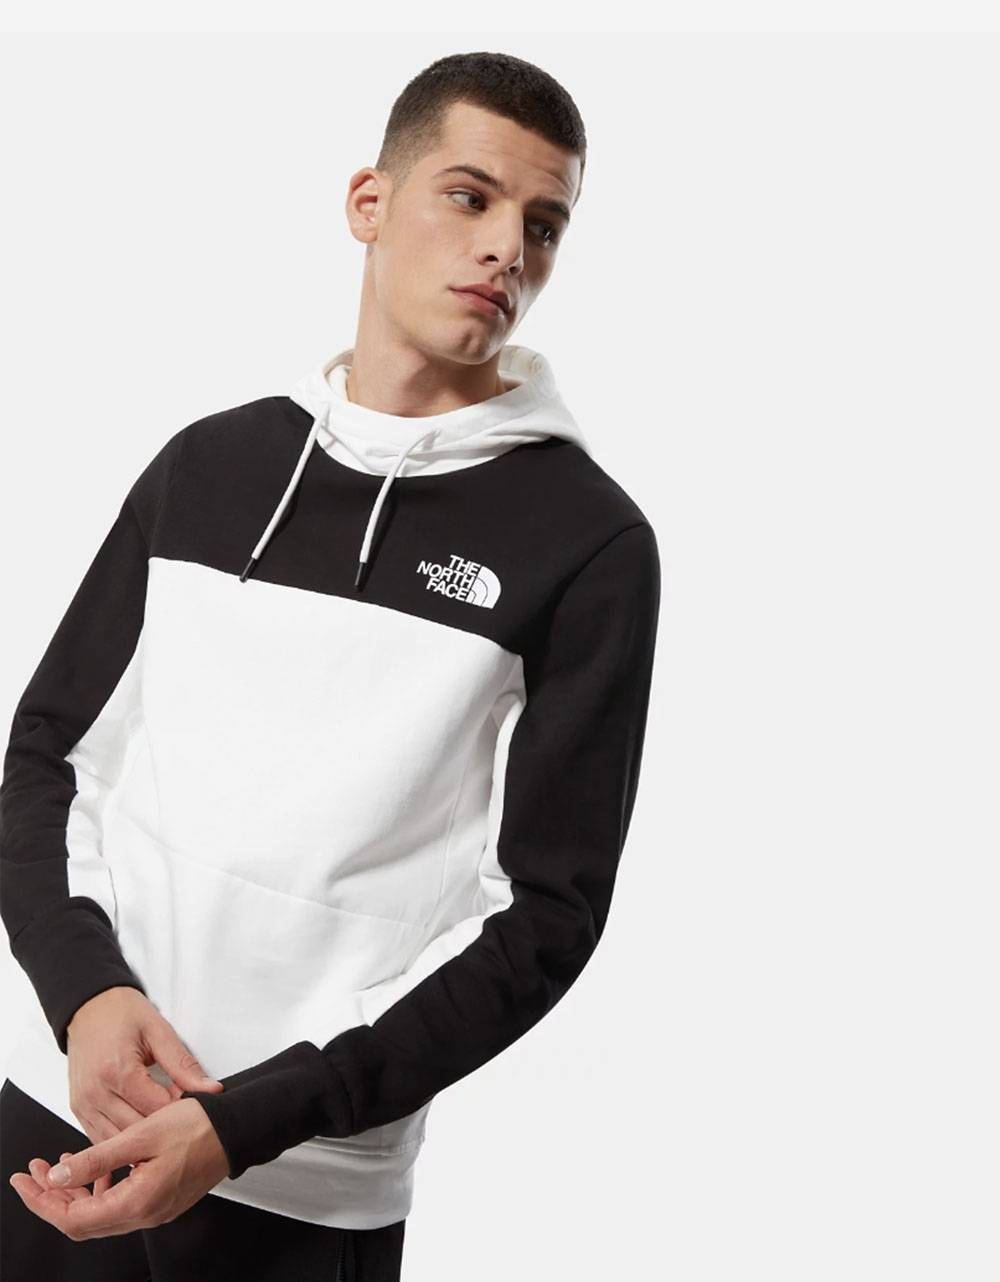 The North Face Himalayan hoodie - white/black THE NORTH FACE Sweater 90,16€